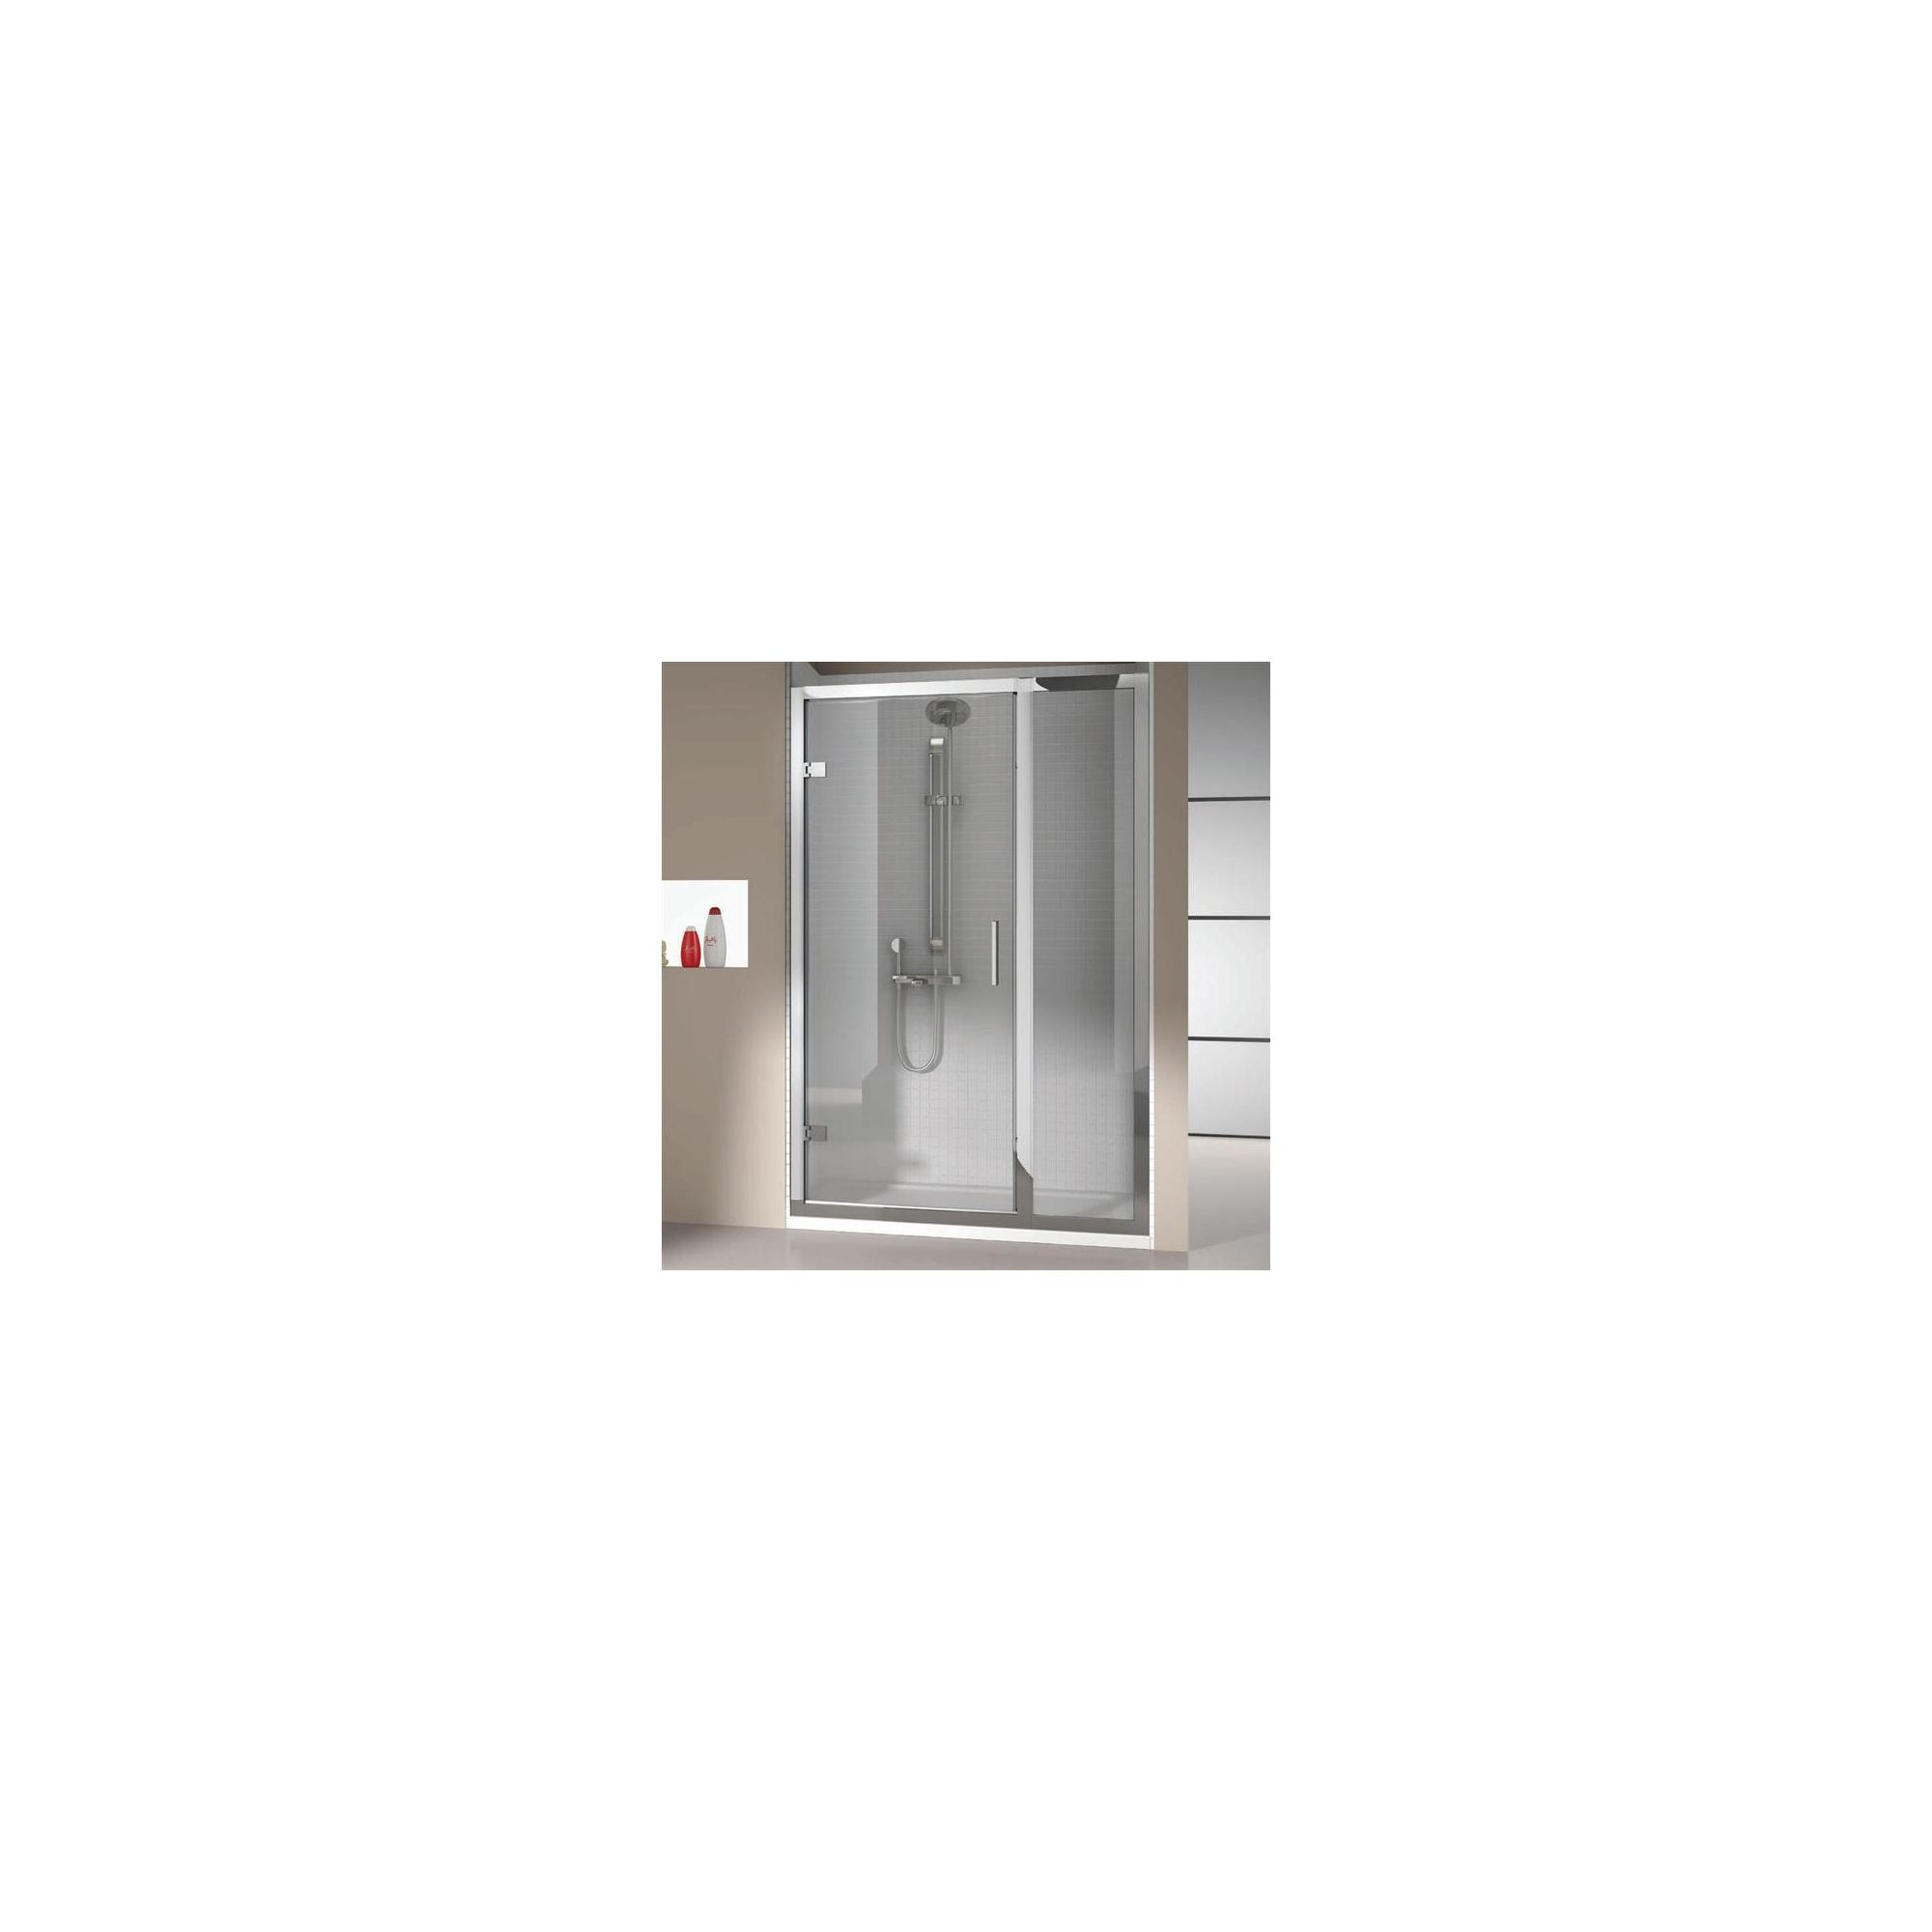 Merlyn Vivid Eight Hinged Shower Door Enclosure with Inline Panel 1200mm x 800mm (including Merlyte Tray) at Tesco Direct